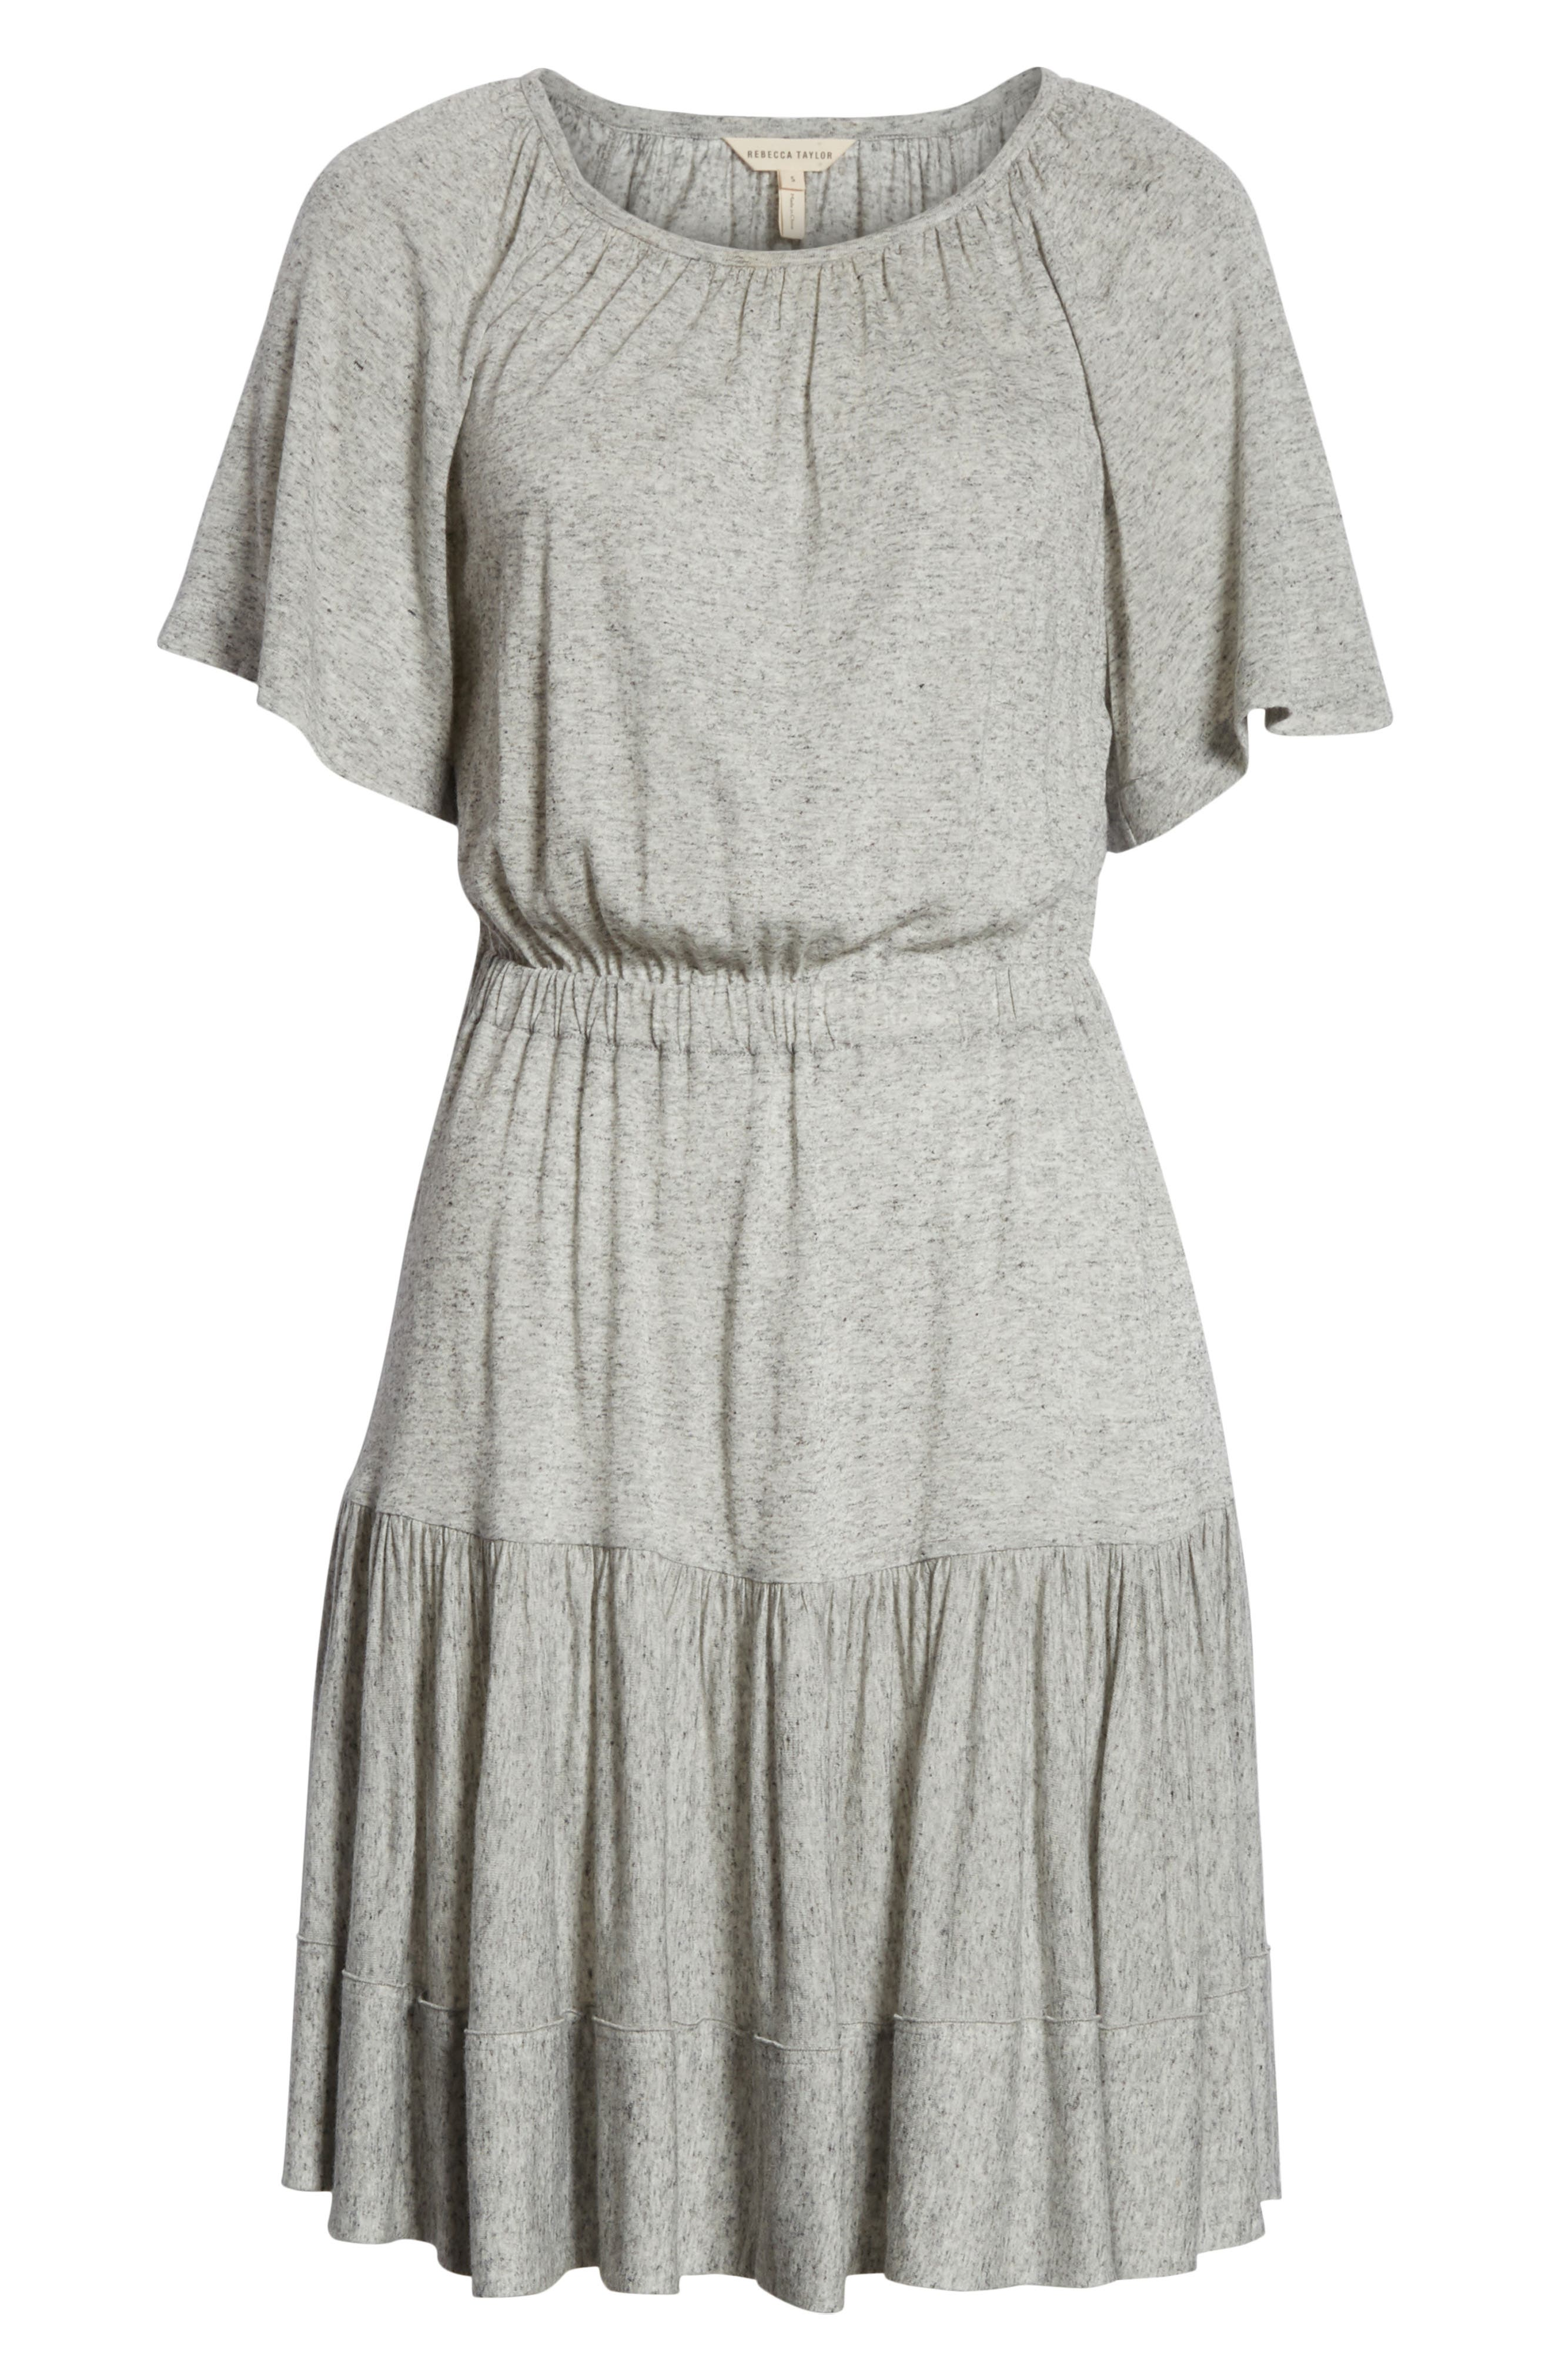 Ruffle Back Cutout Dress,                             Alternate thumbnail 6, color,                             Grey Melange